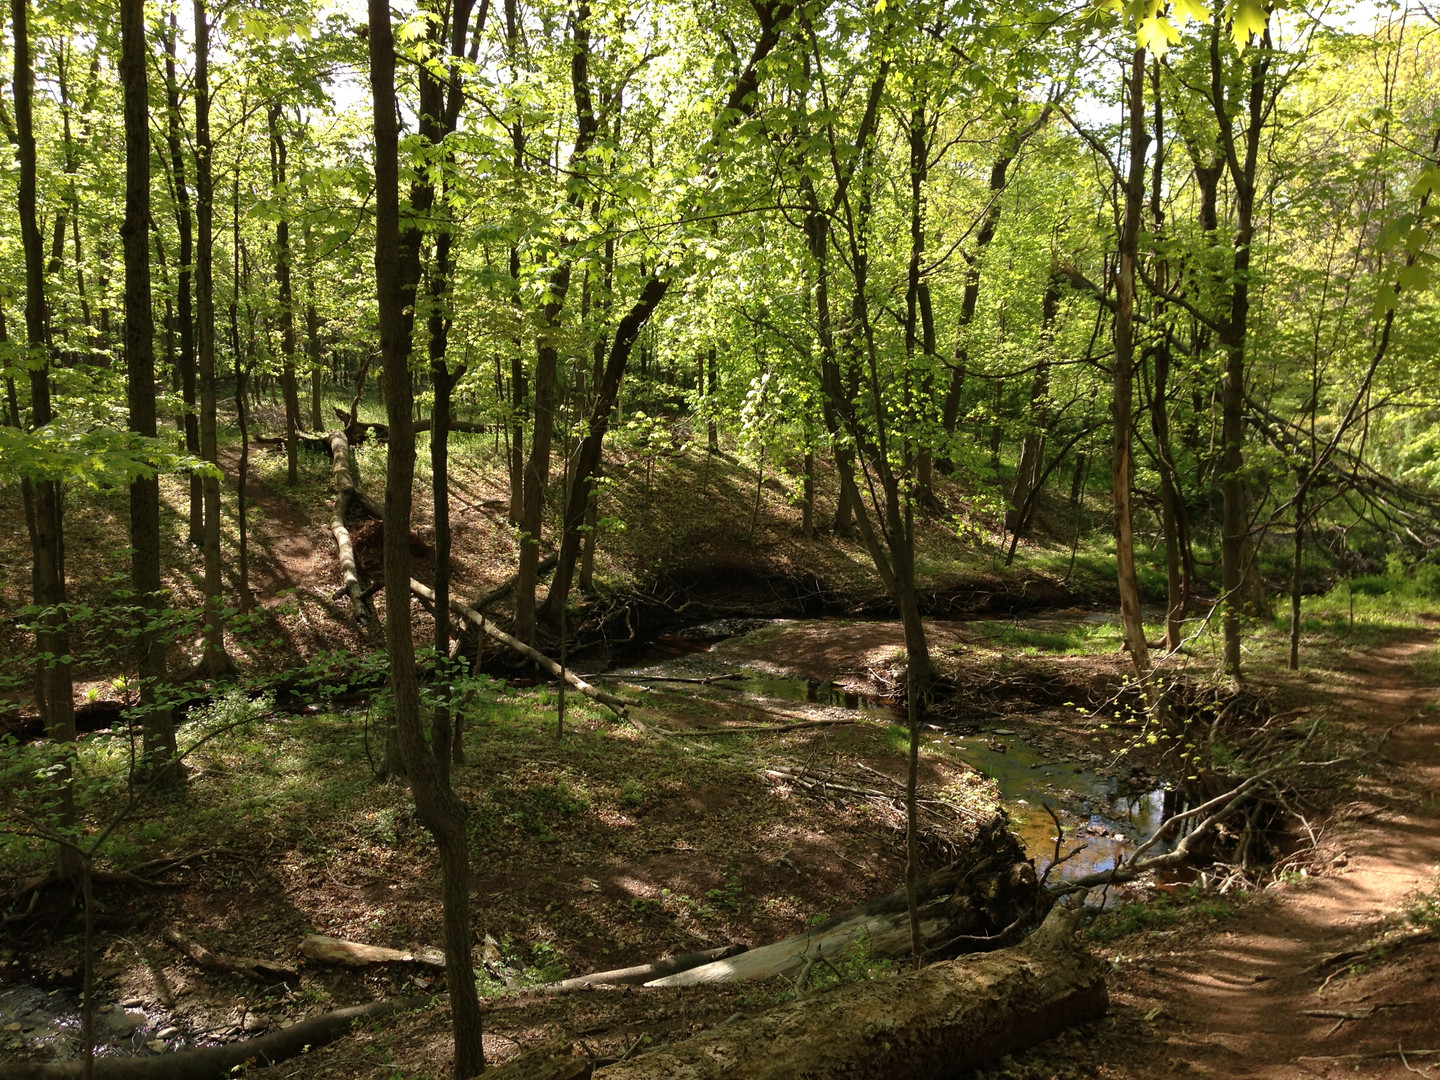 2013-05-05_09_31_59_View_of_a_meander_in